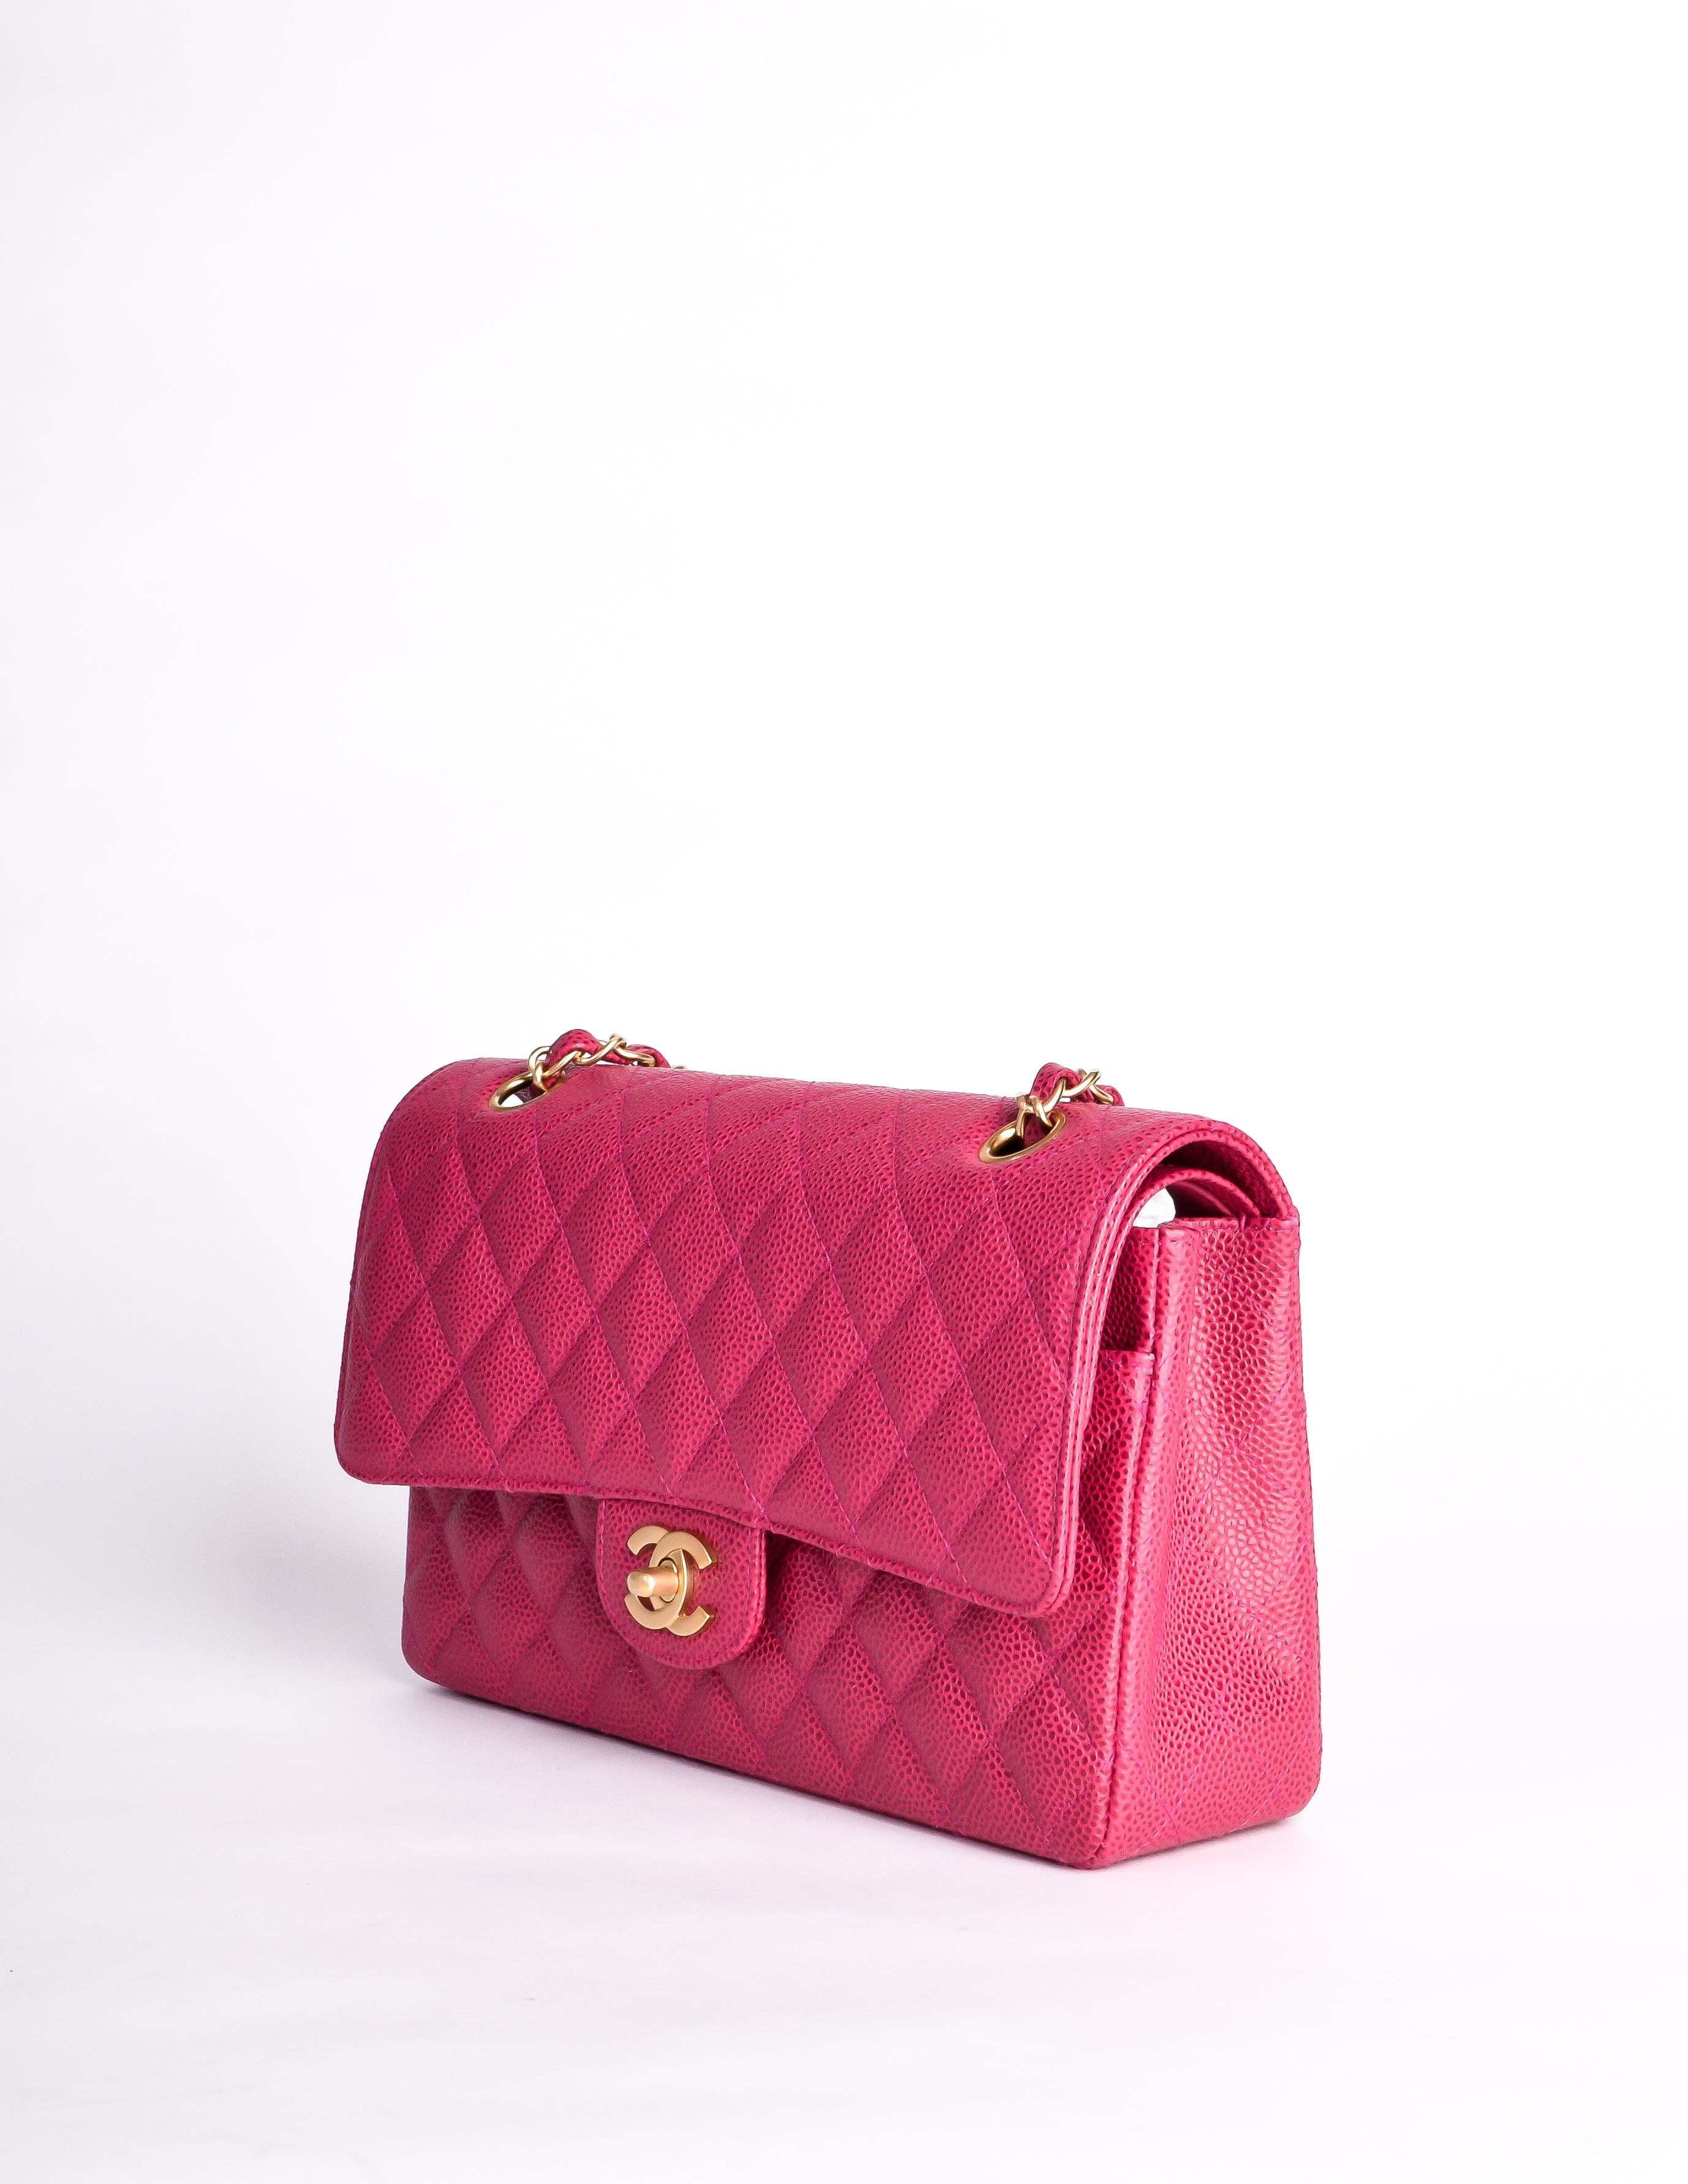 3503713a49e0 Chanel Vintage Fuchsia Pink Quilted Caviar 2.55 Medium Classic Double Flap  Bag